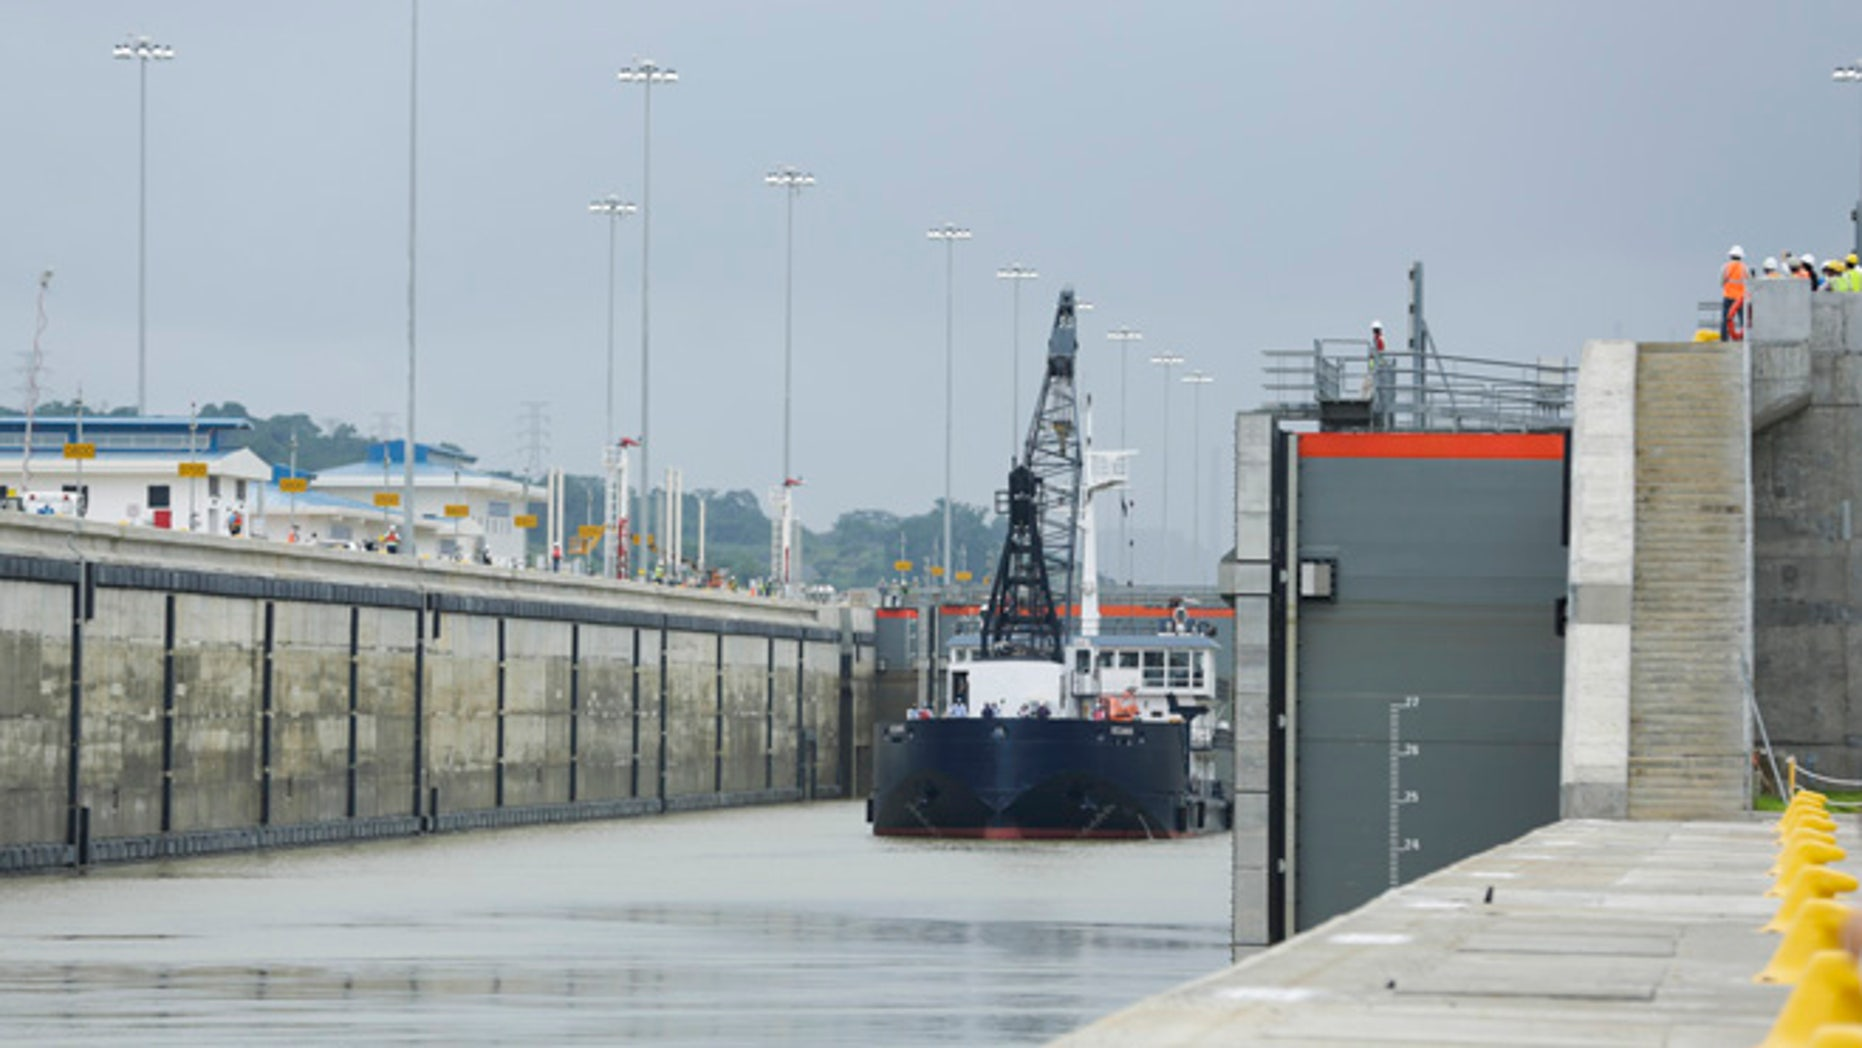 A Panama Canal Authority crane ship Oceanus, navigates the Cocoli locks during a test of the newly expanded Panama Canal locks on Pacific side, in Cocoli, Panama, Monday, June 20, 2016. The canal's expansion project will be officially inaugurated on June 26. (AP Photo/Arnulfo Franco)